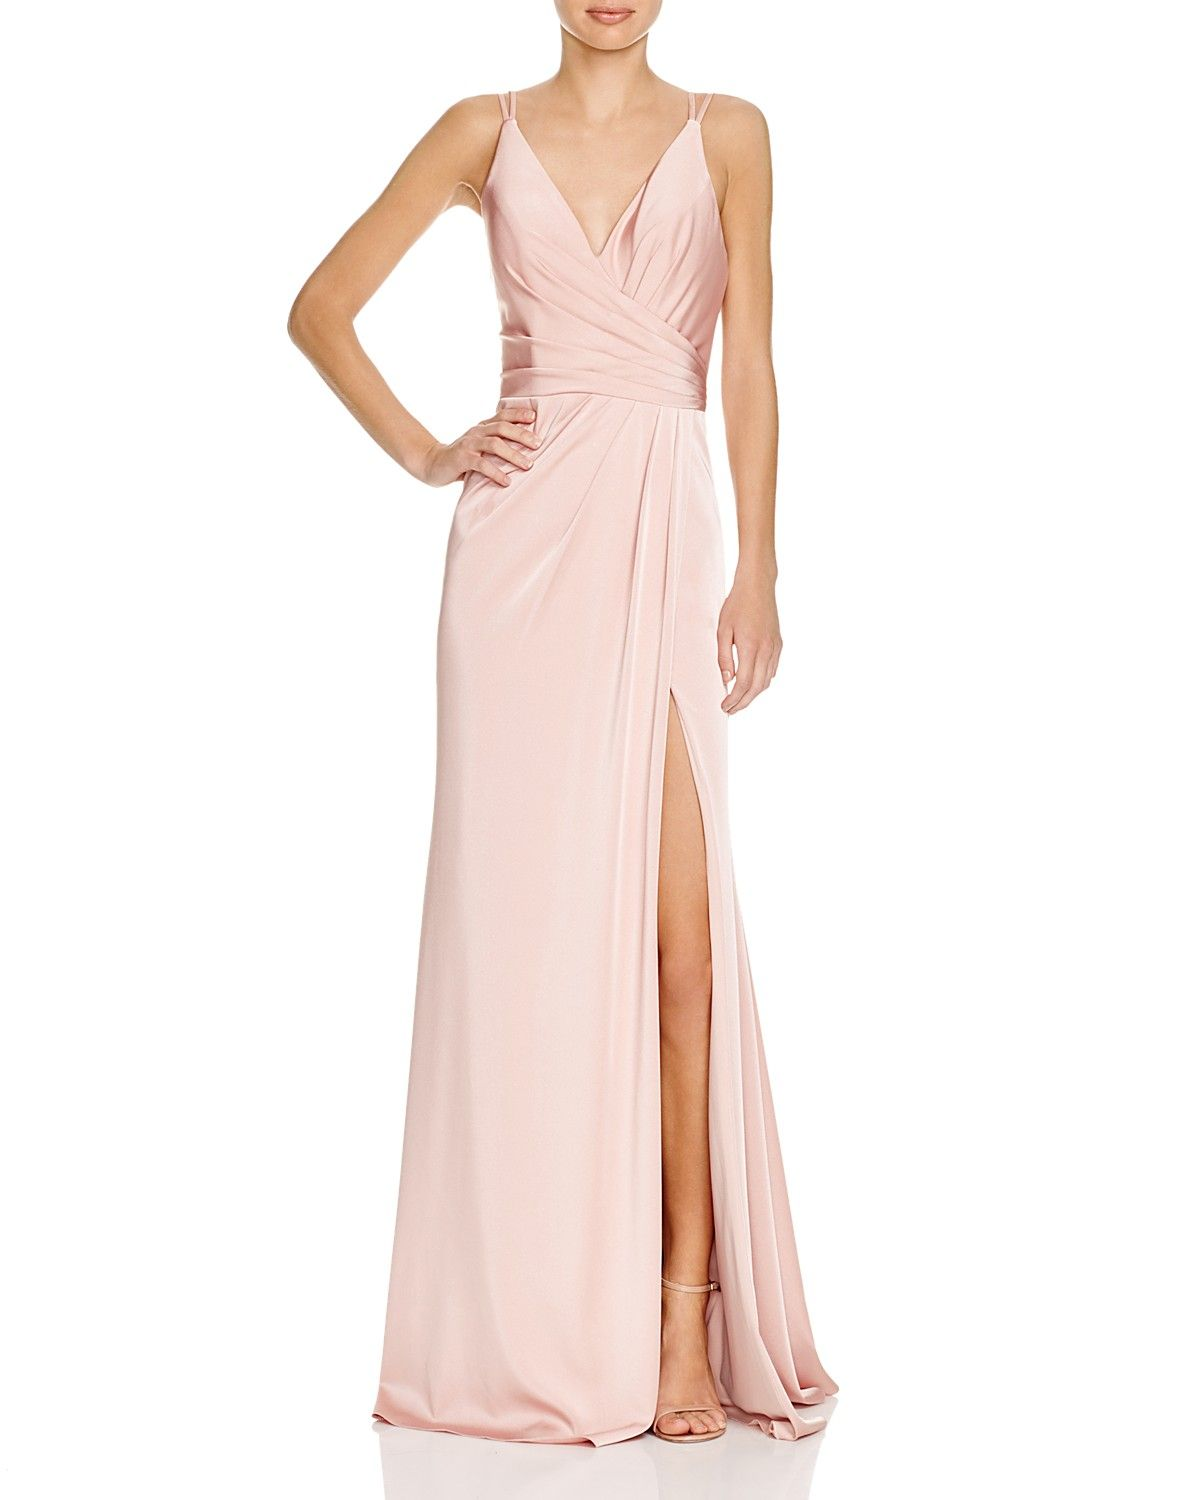 Faviana Couture Faille Satin Draped Gown Women Dresses Evening Formal Gowns Bloomingdale S Pink Evening Gowns Drape Gowns White Evening Gowns [ 1500 x 1200 Pixel ]